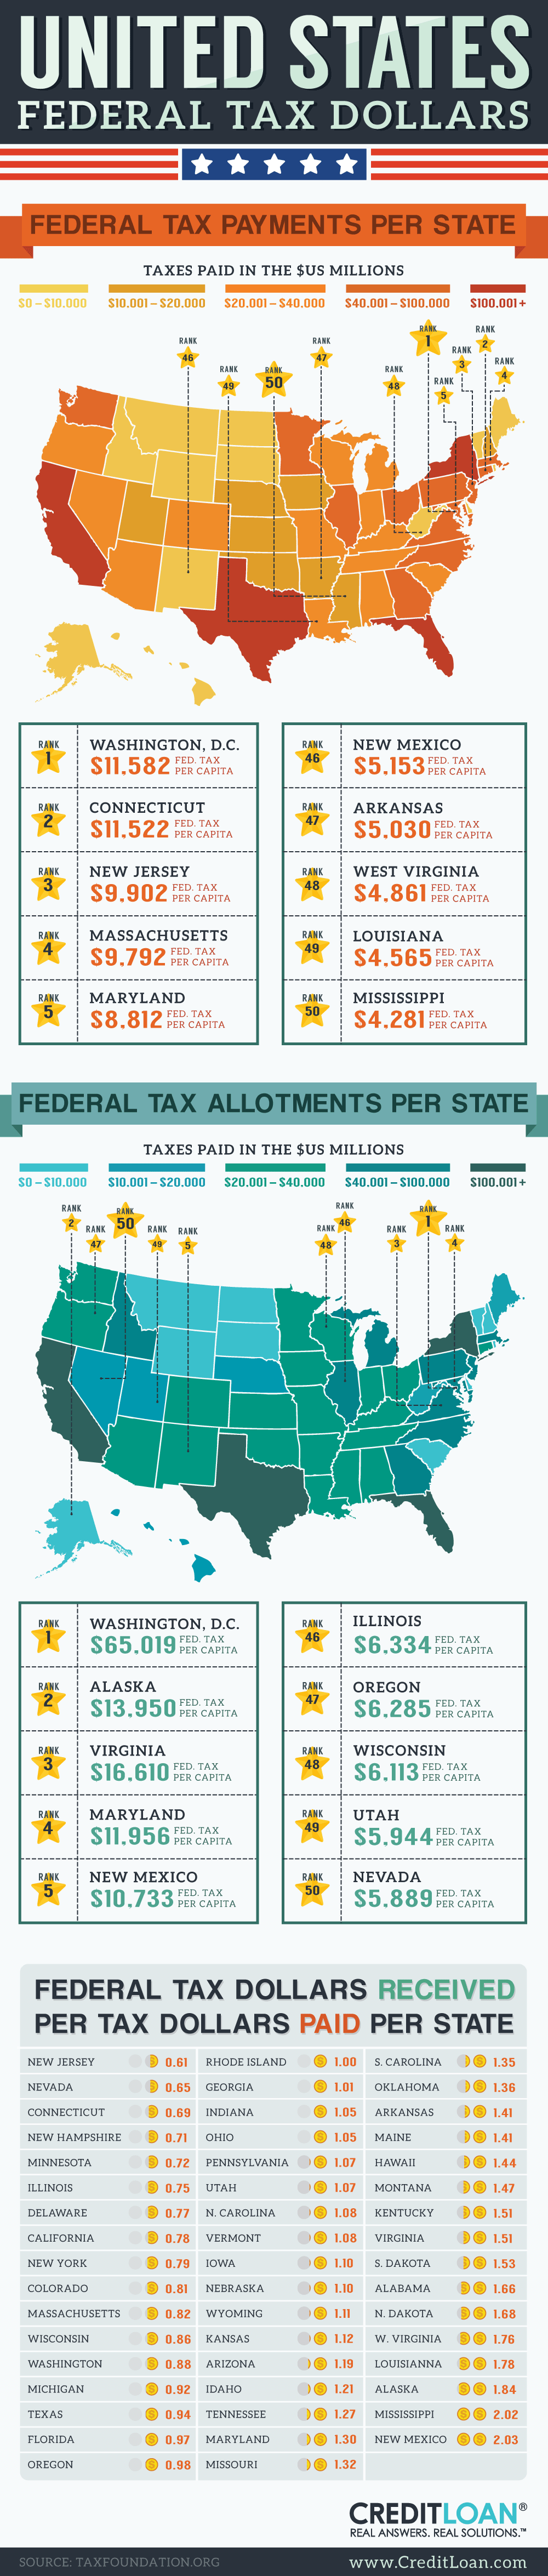 preview of full tax infographic